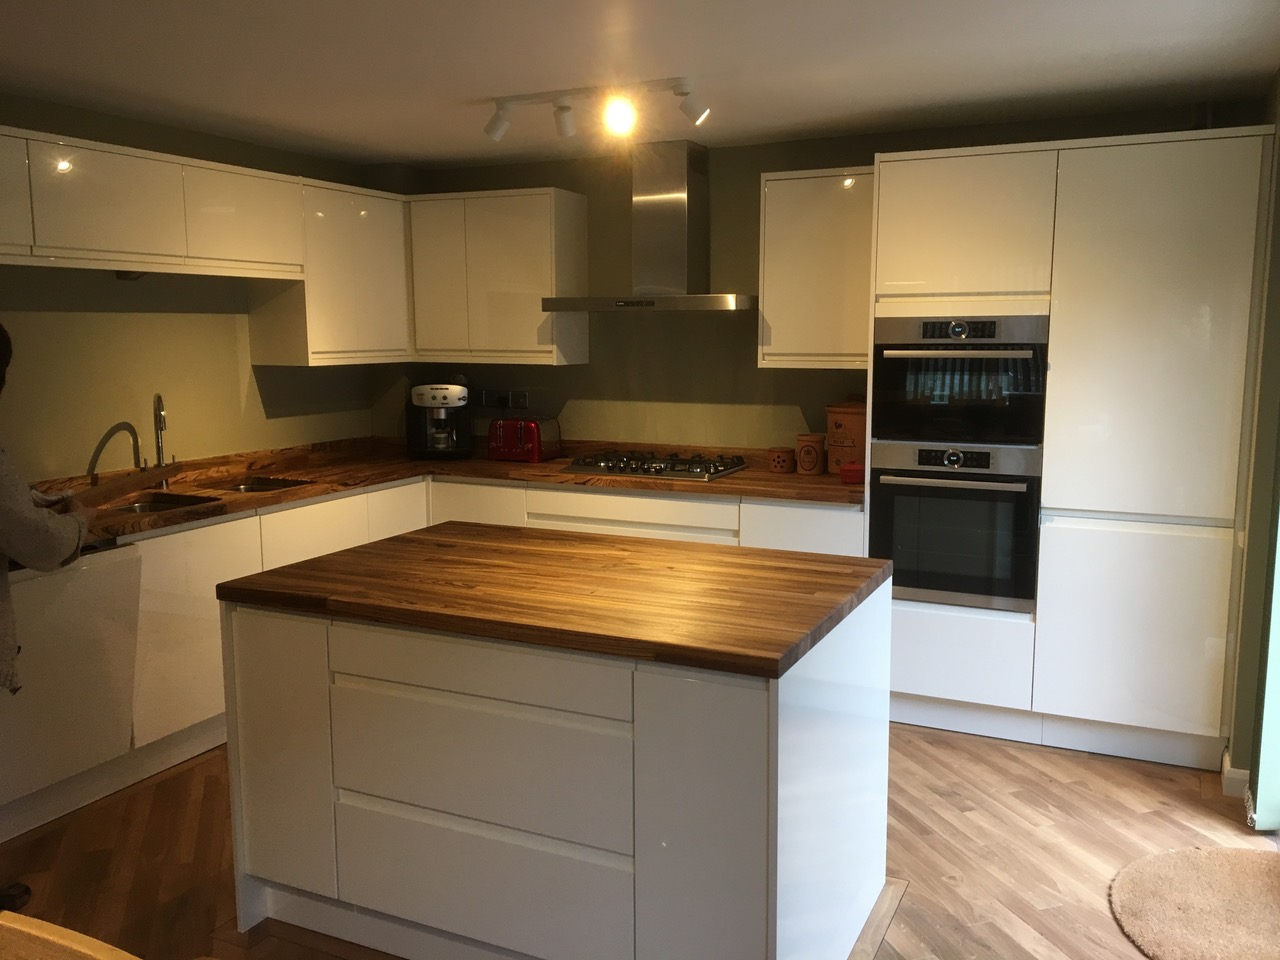 Kitchens West Midlands - Bespoke Fitted Kitchen Design